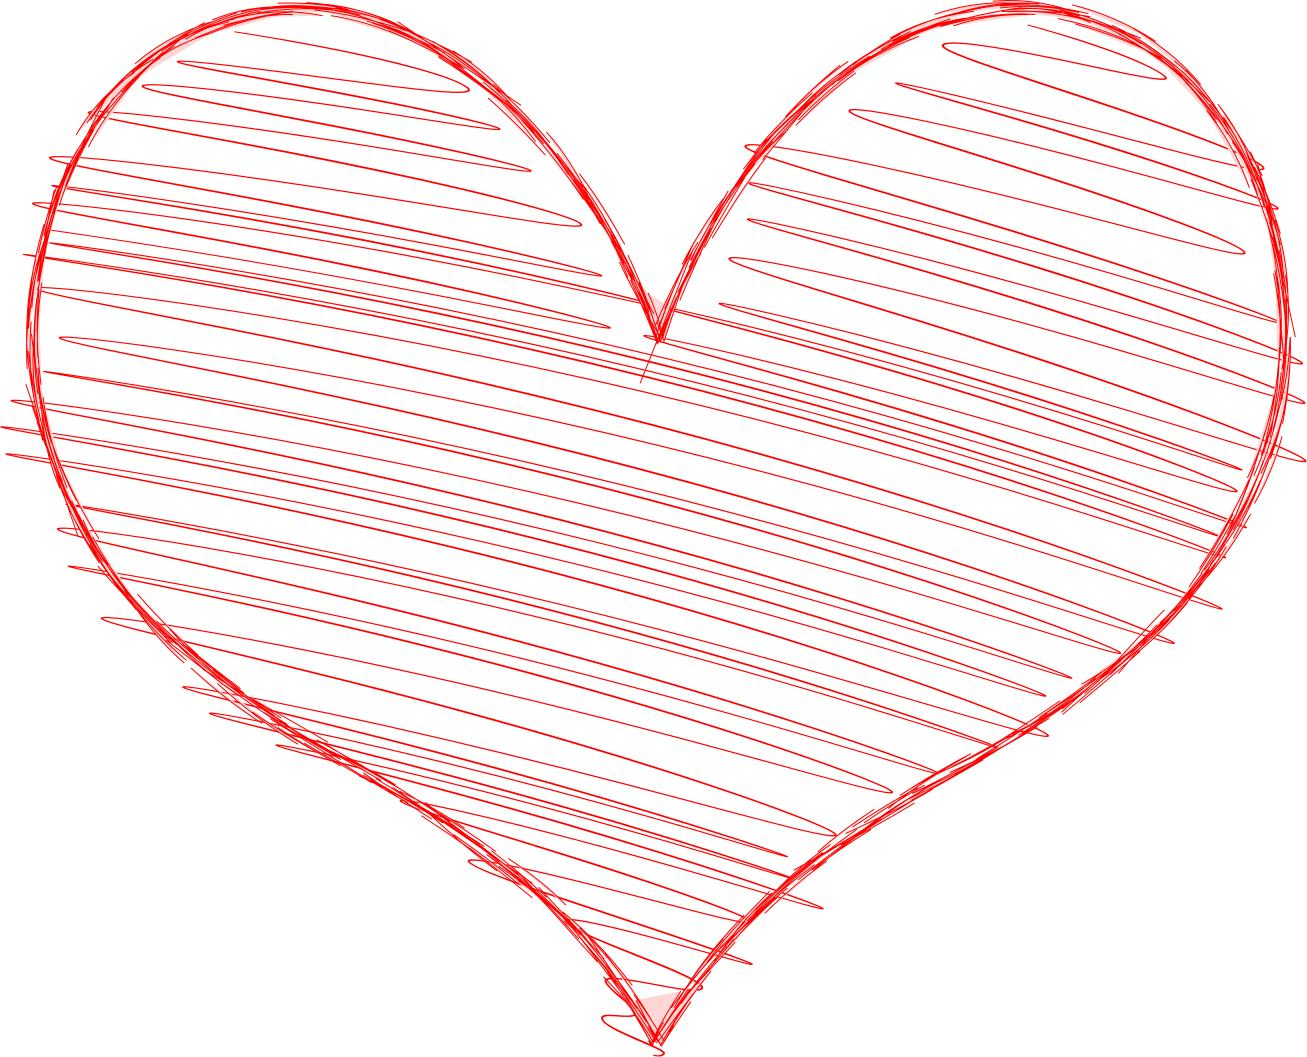 1307x1057 Stockvault Heart With Scribble Fill138417 Daphneshadows